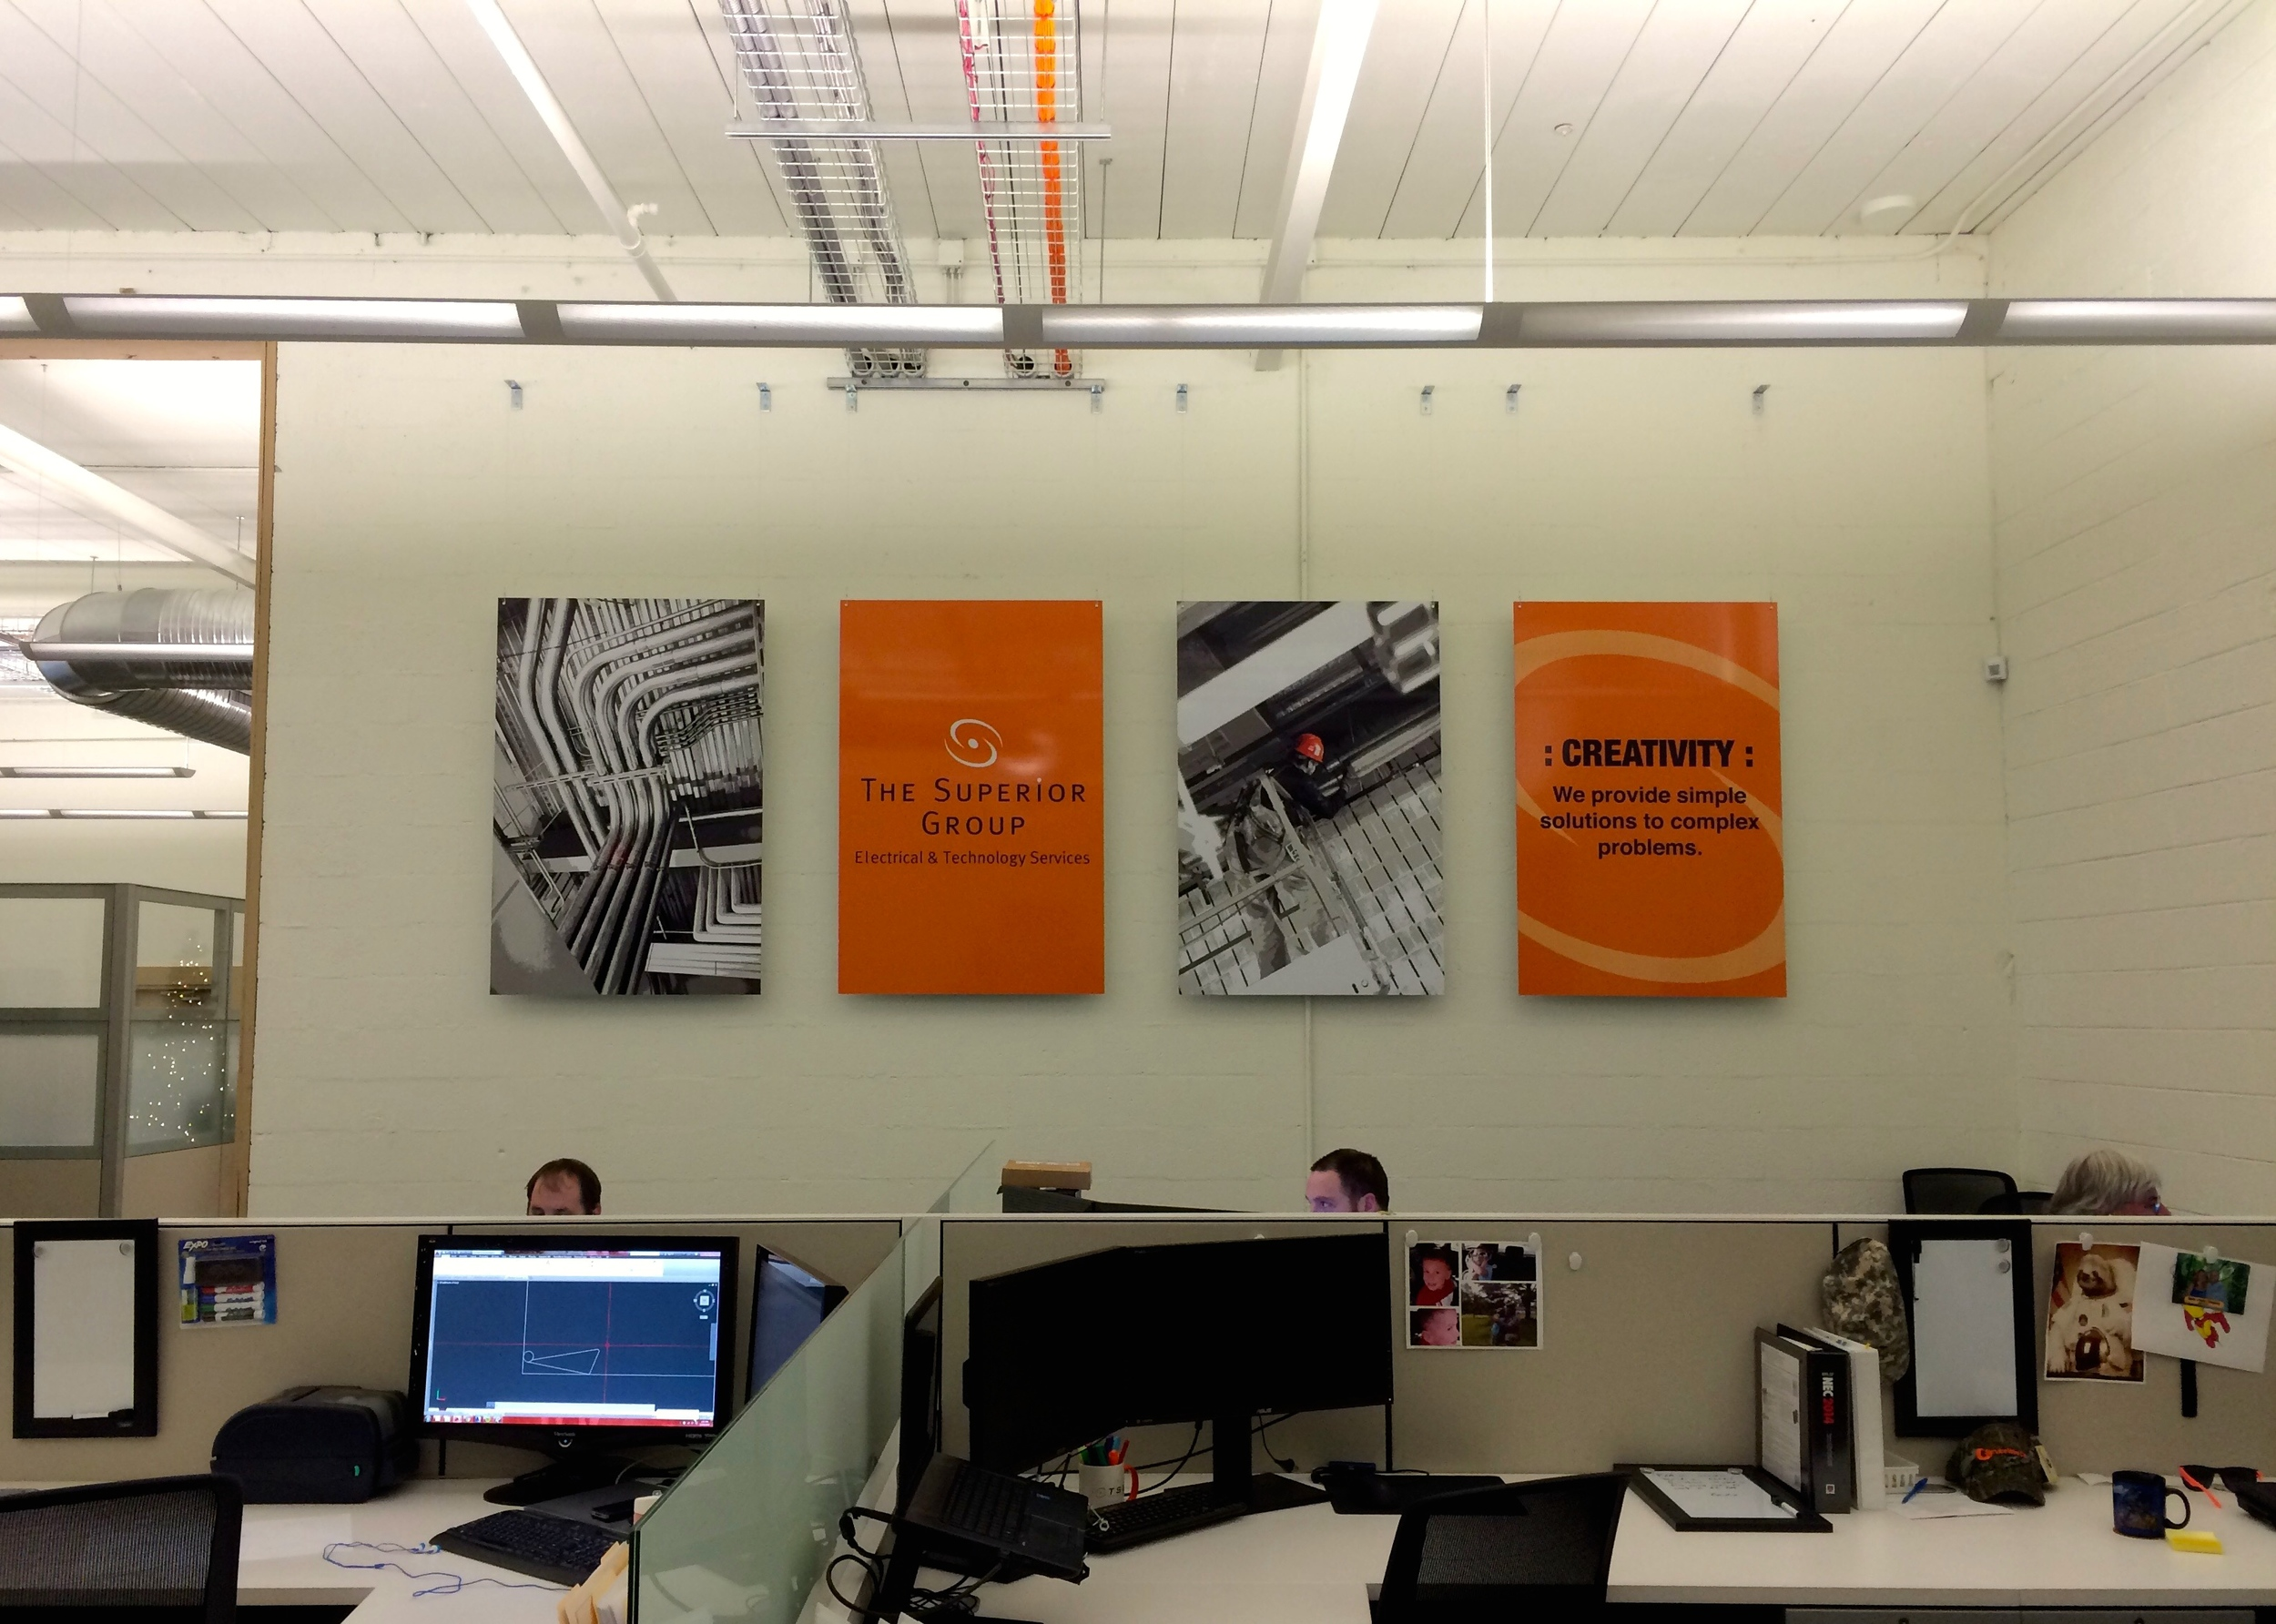 Interior Wall Graphics for The Superior Group Columbus, OH